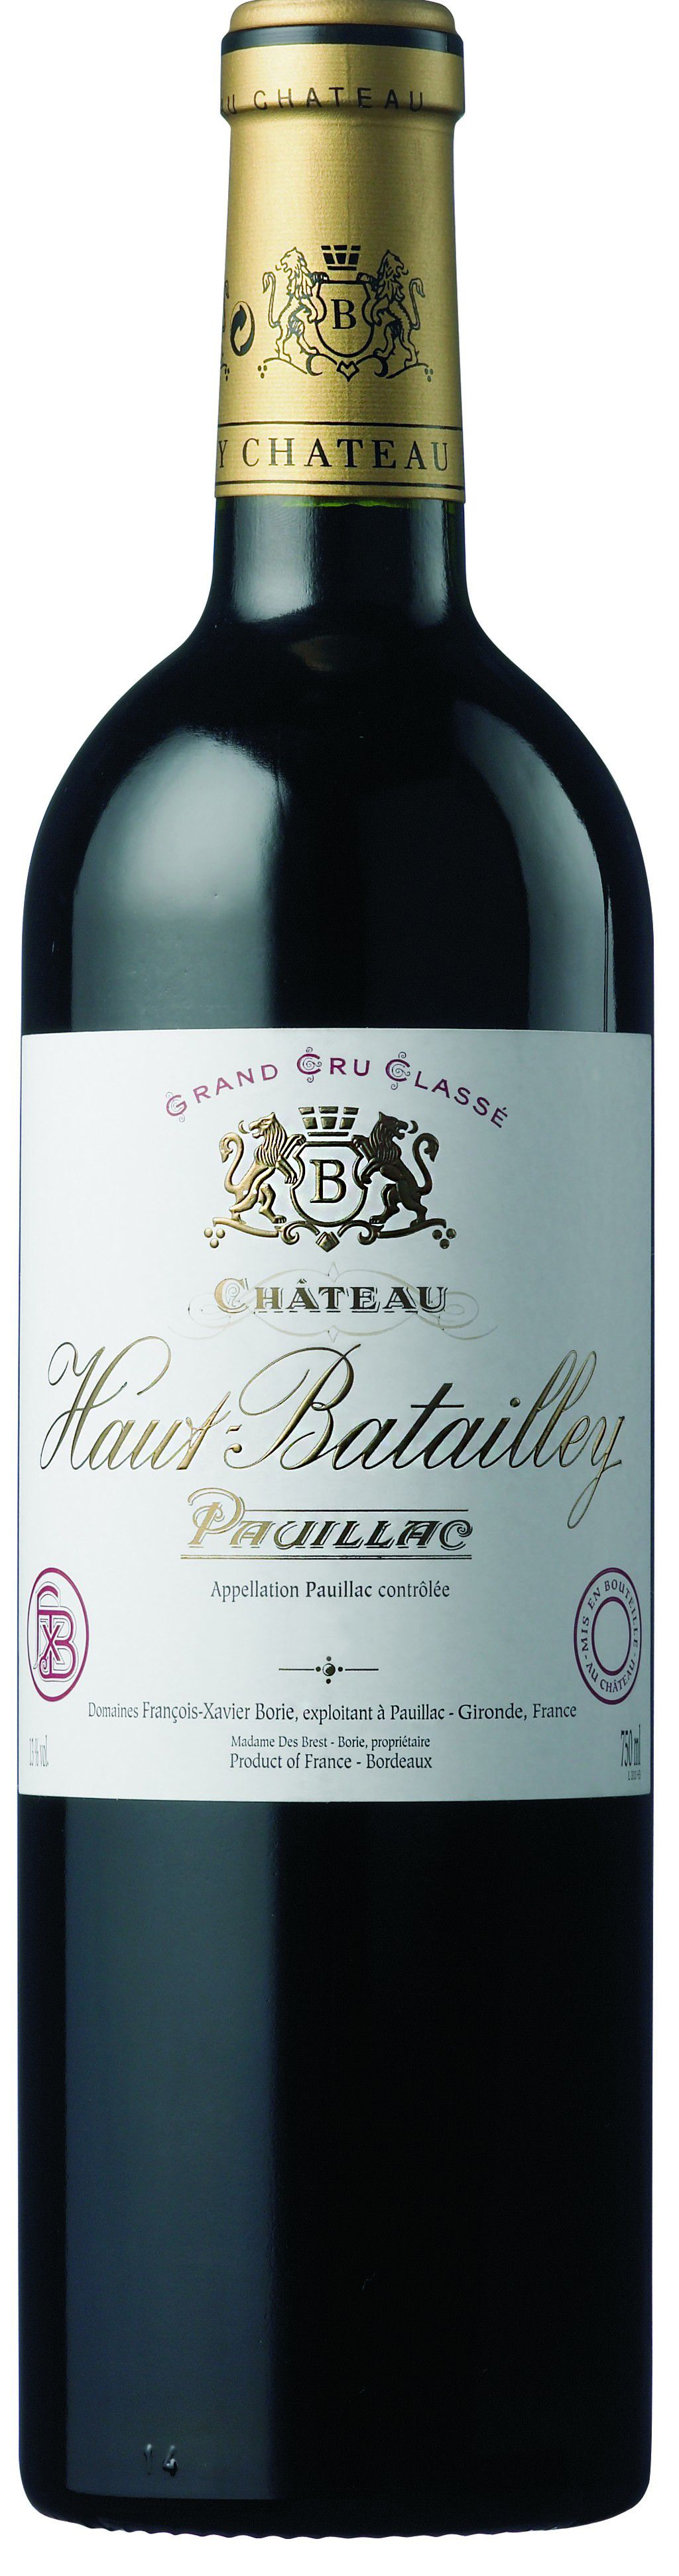 Chateau Haut-Batailley, 2006